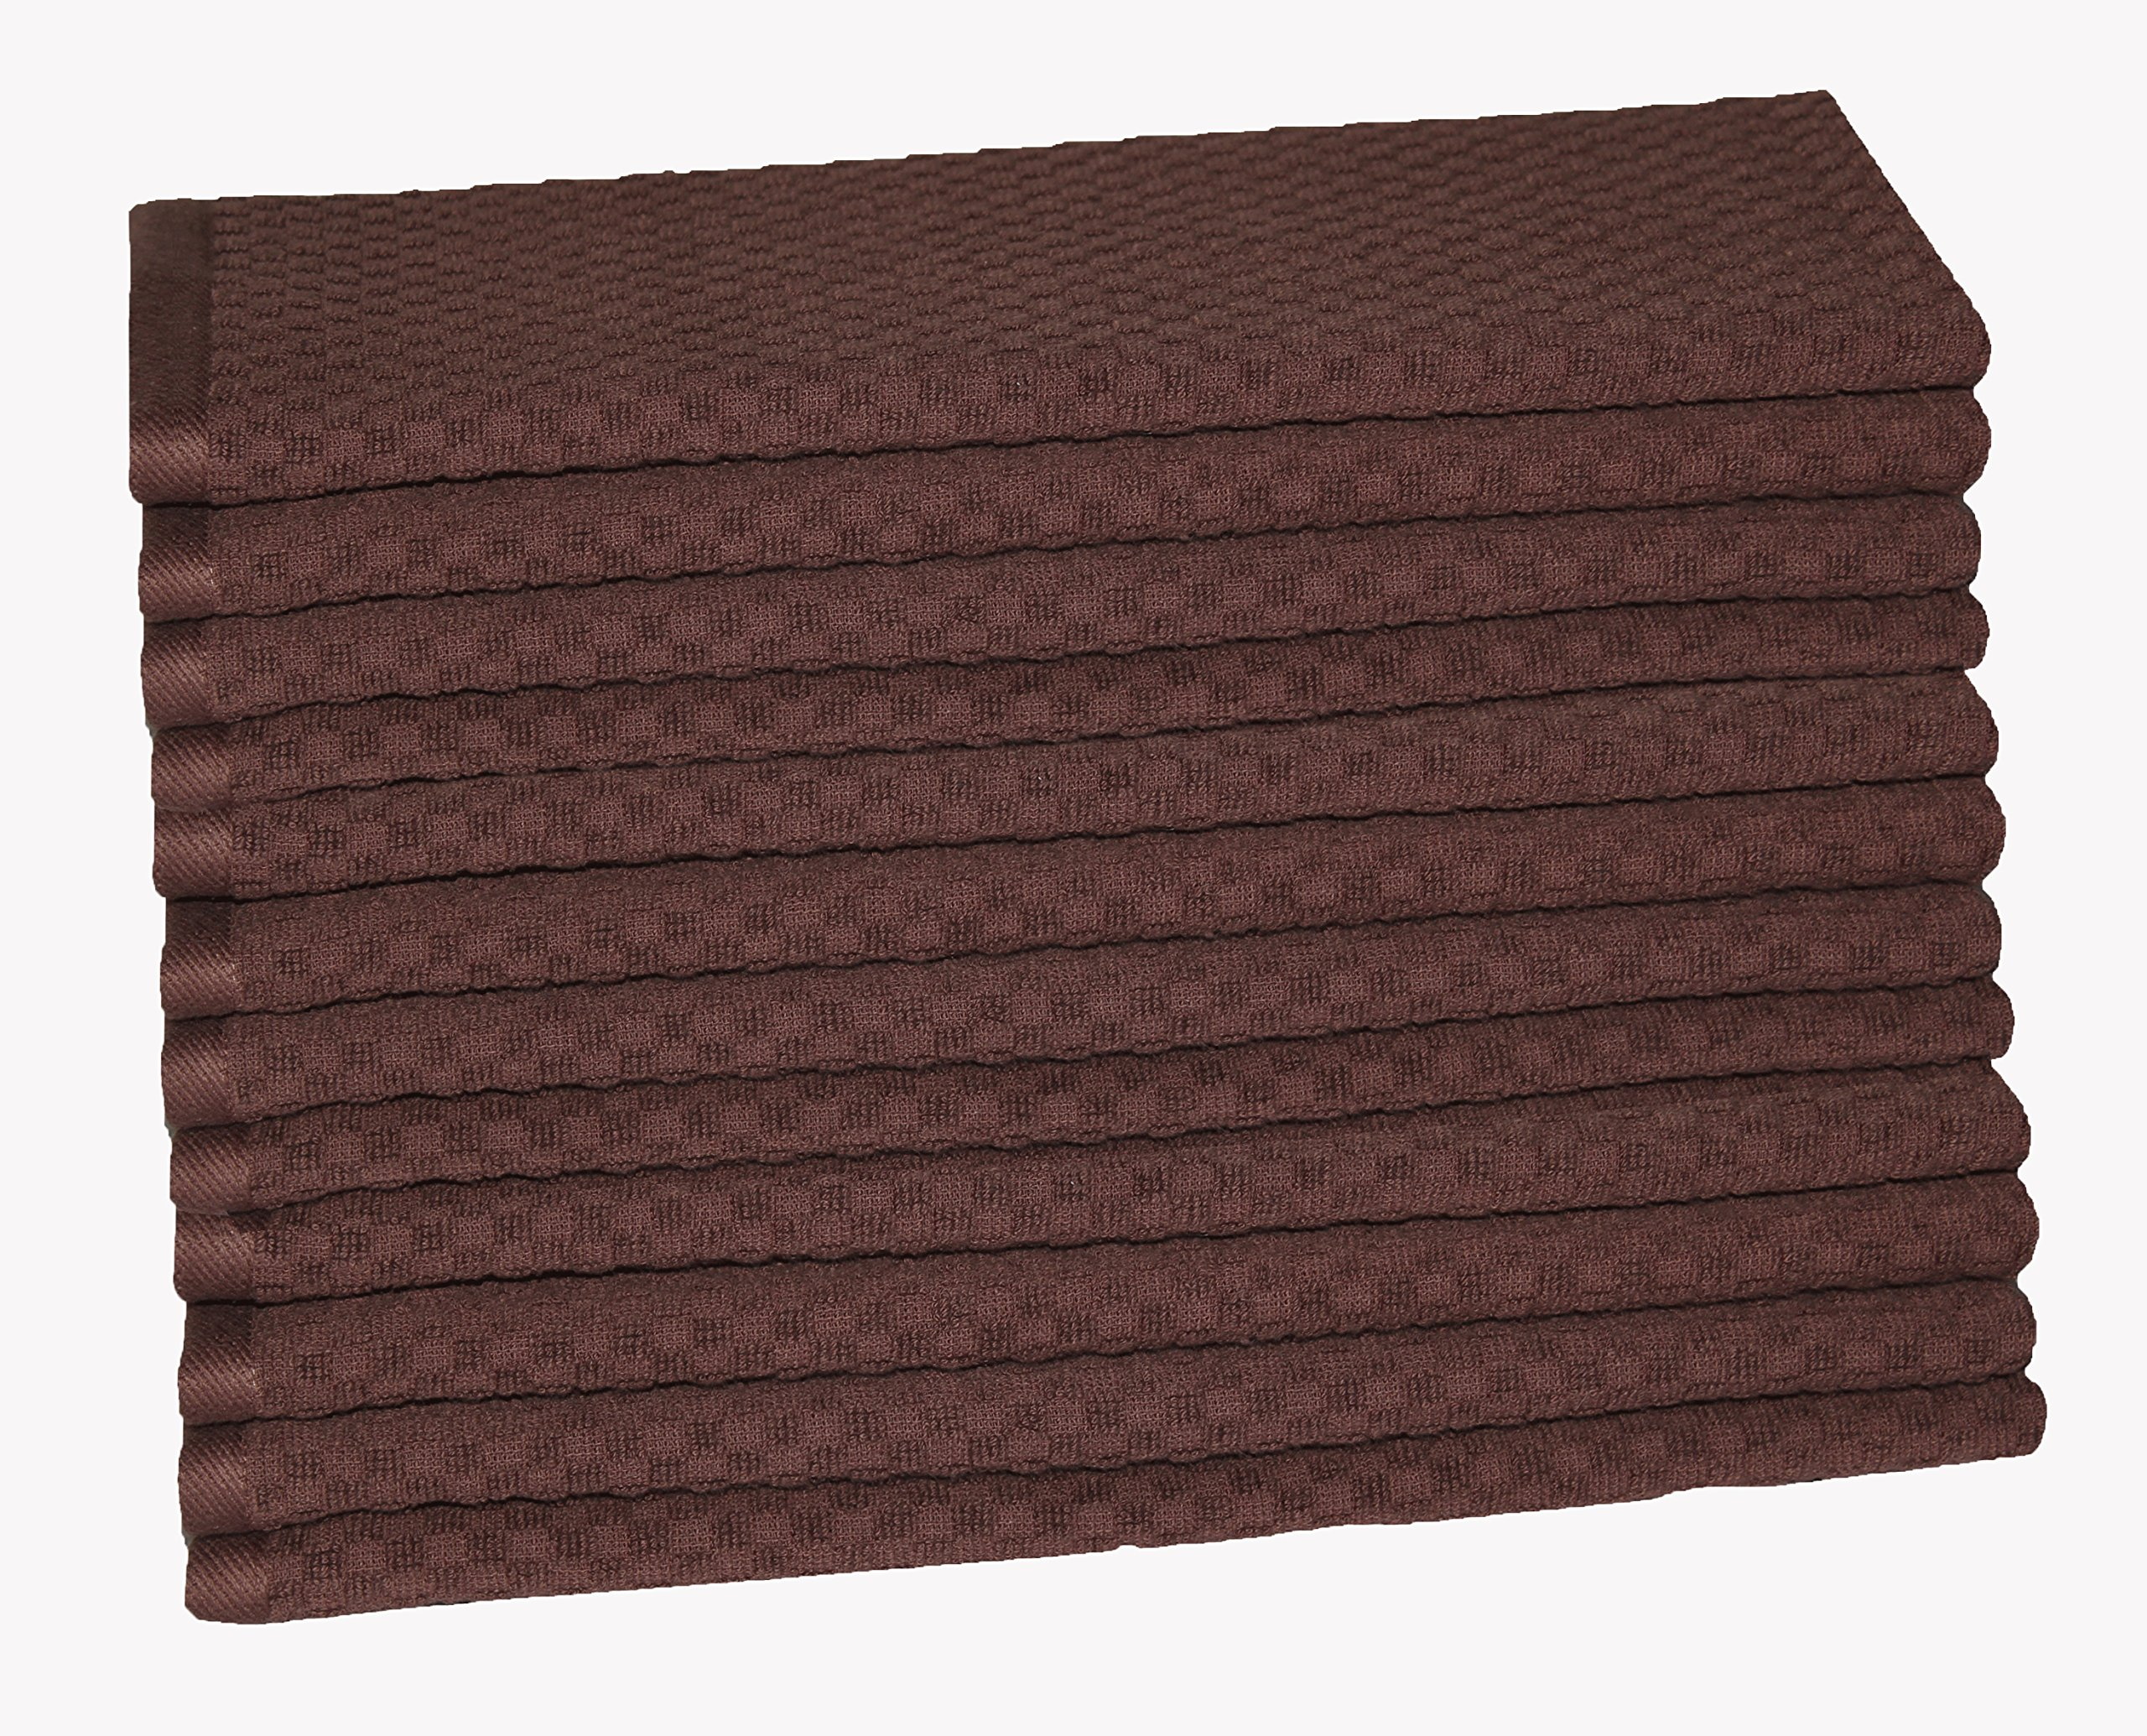 Cotton Craft - 12 Pack - Euro Cafe Waffle Weave Terry Kitchen Towels - 16x28 Inches - Chocolate - 400 GSM quality - 100% Ringspun 2 Ply Cotton - Highly Absorbent Low Lint - Multi Purpose